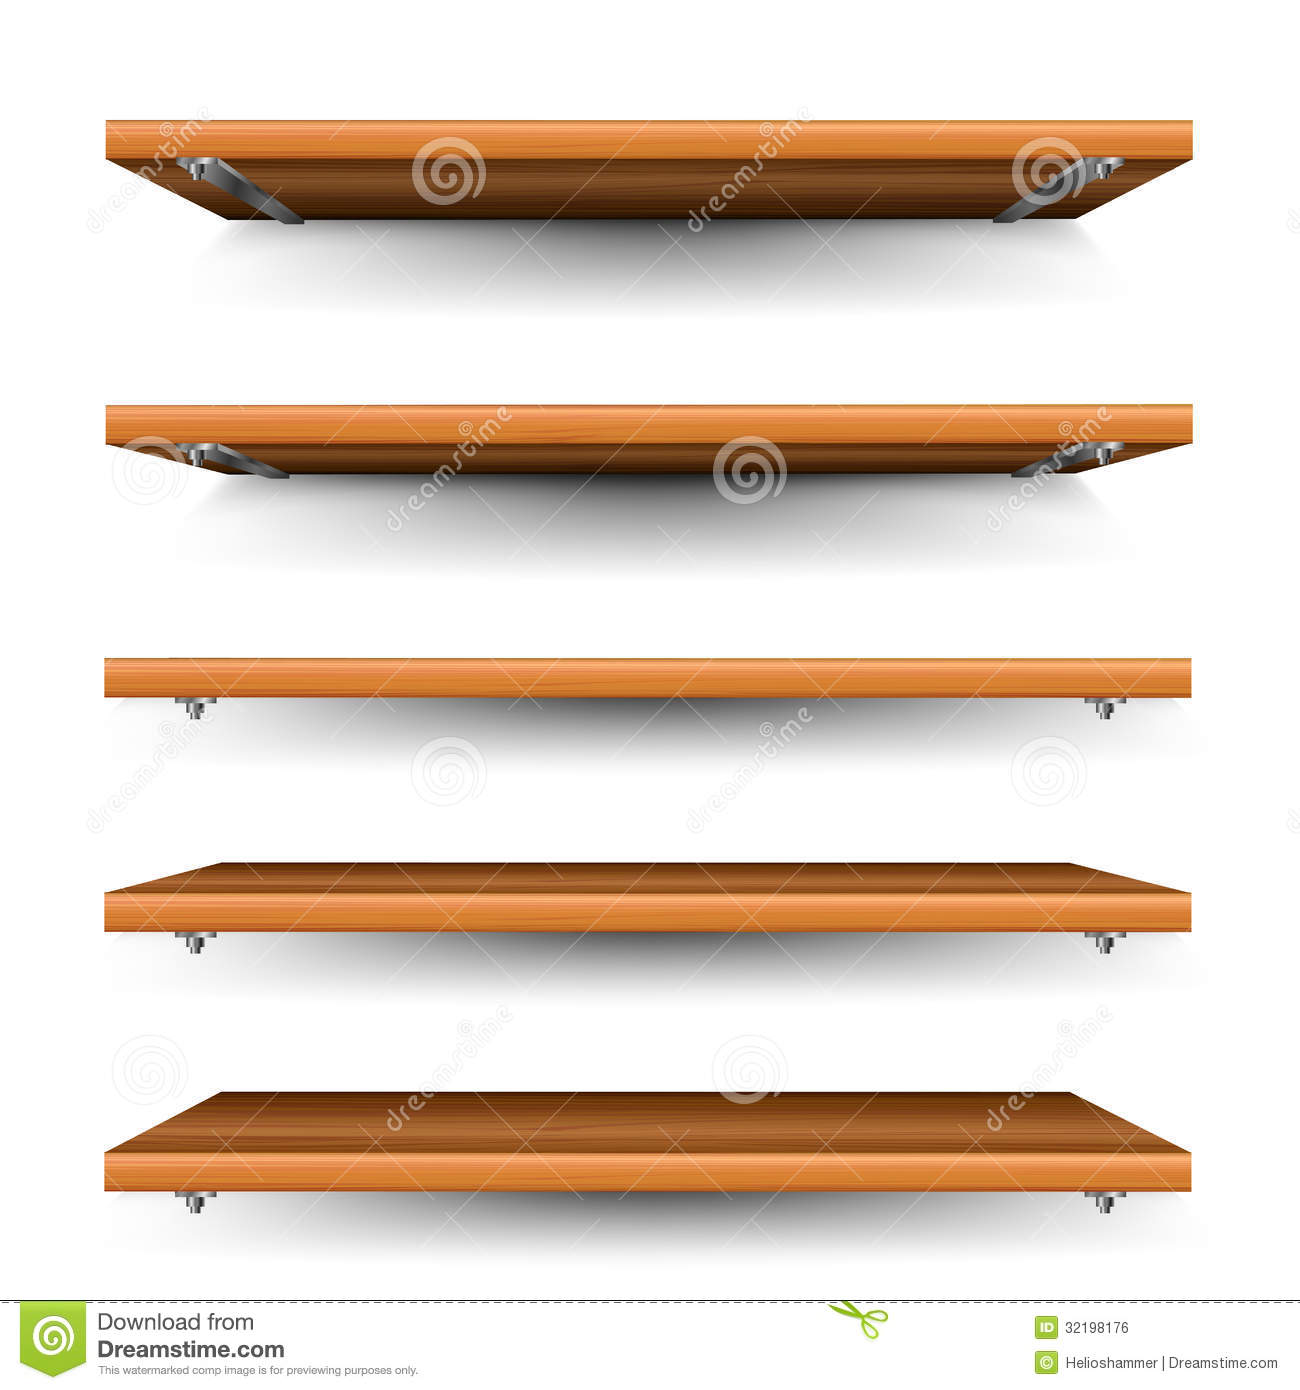 Wood Shelves Set Royalty Free Stock Image - Image: 32198176